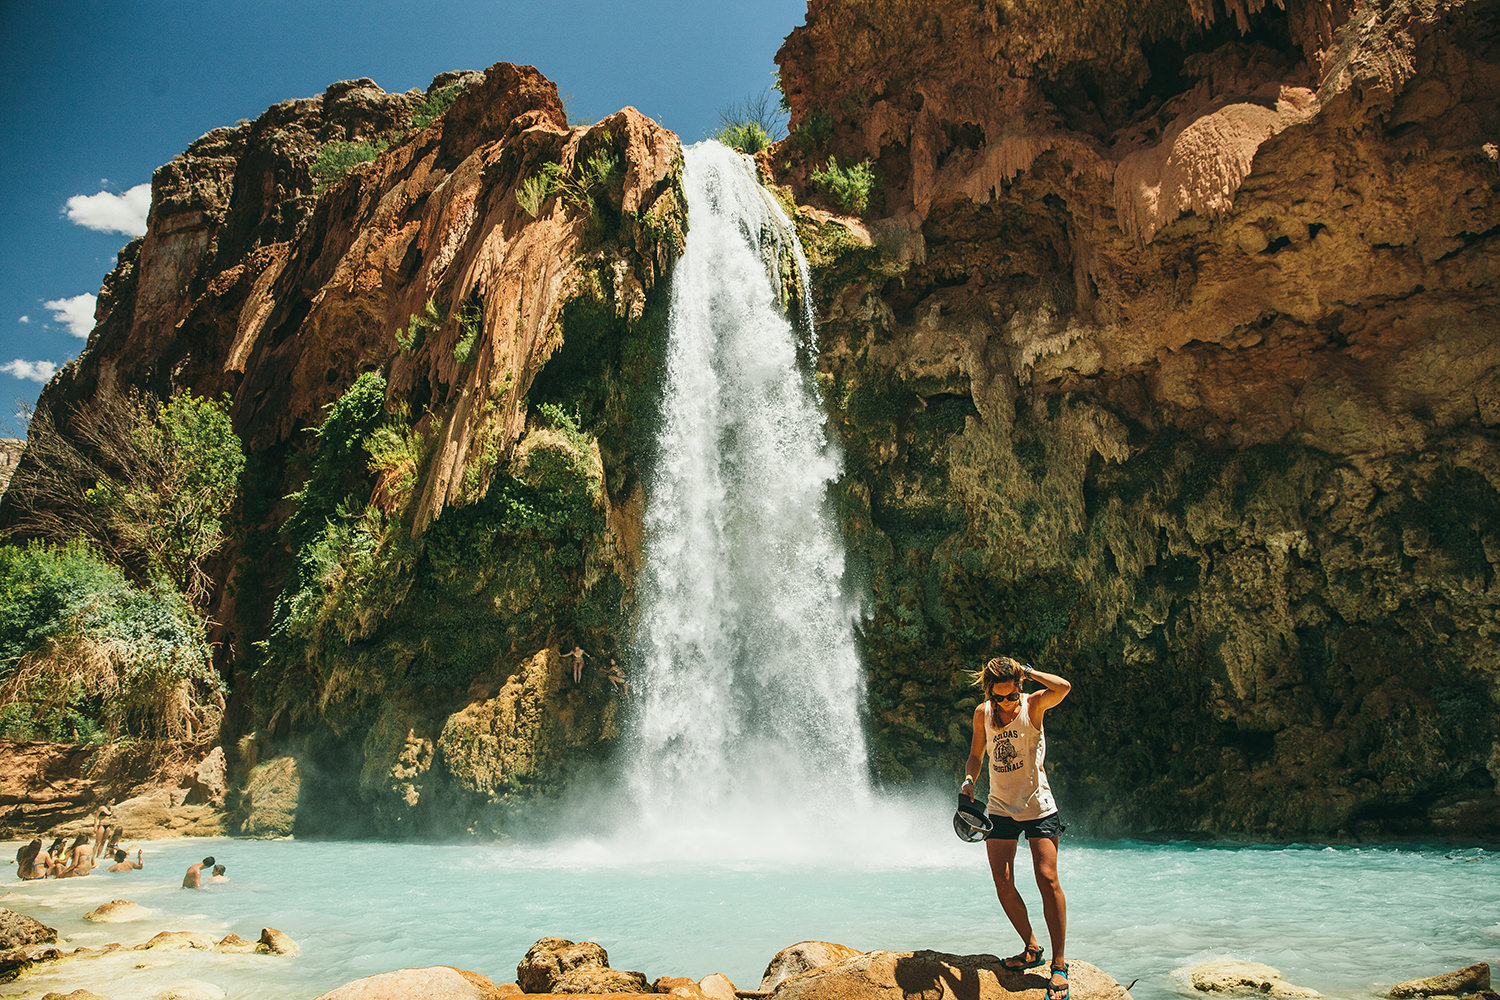 Huckberry grand canyon national park kylie turley know before you go havasupai.jpg?ixlib=rails 2.1